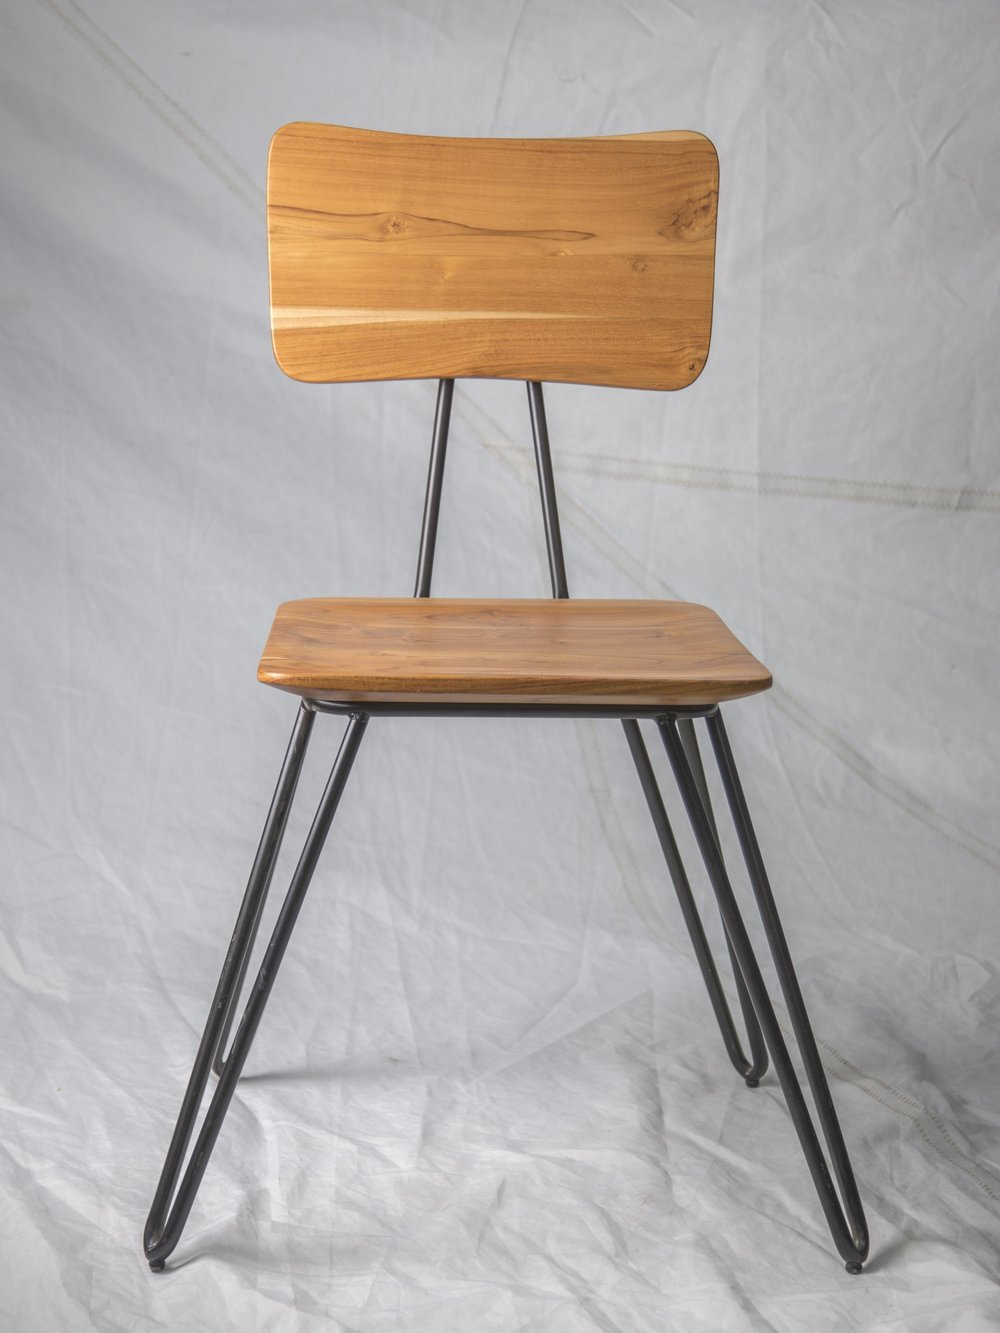 "CH013 Sustainable wood chair 34"" H x 16"" W x 20"" D $125/week Set of 1"